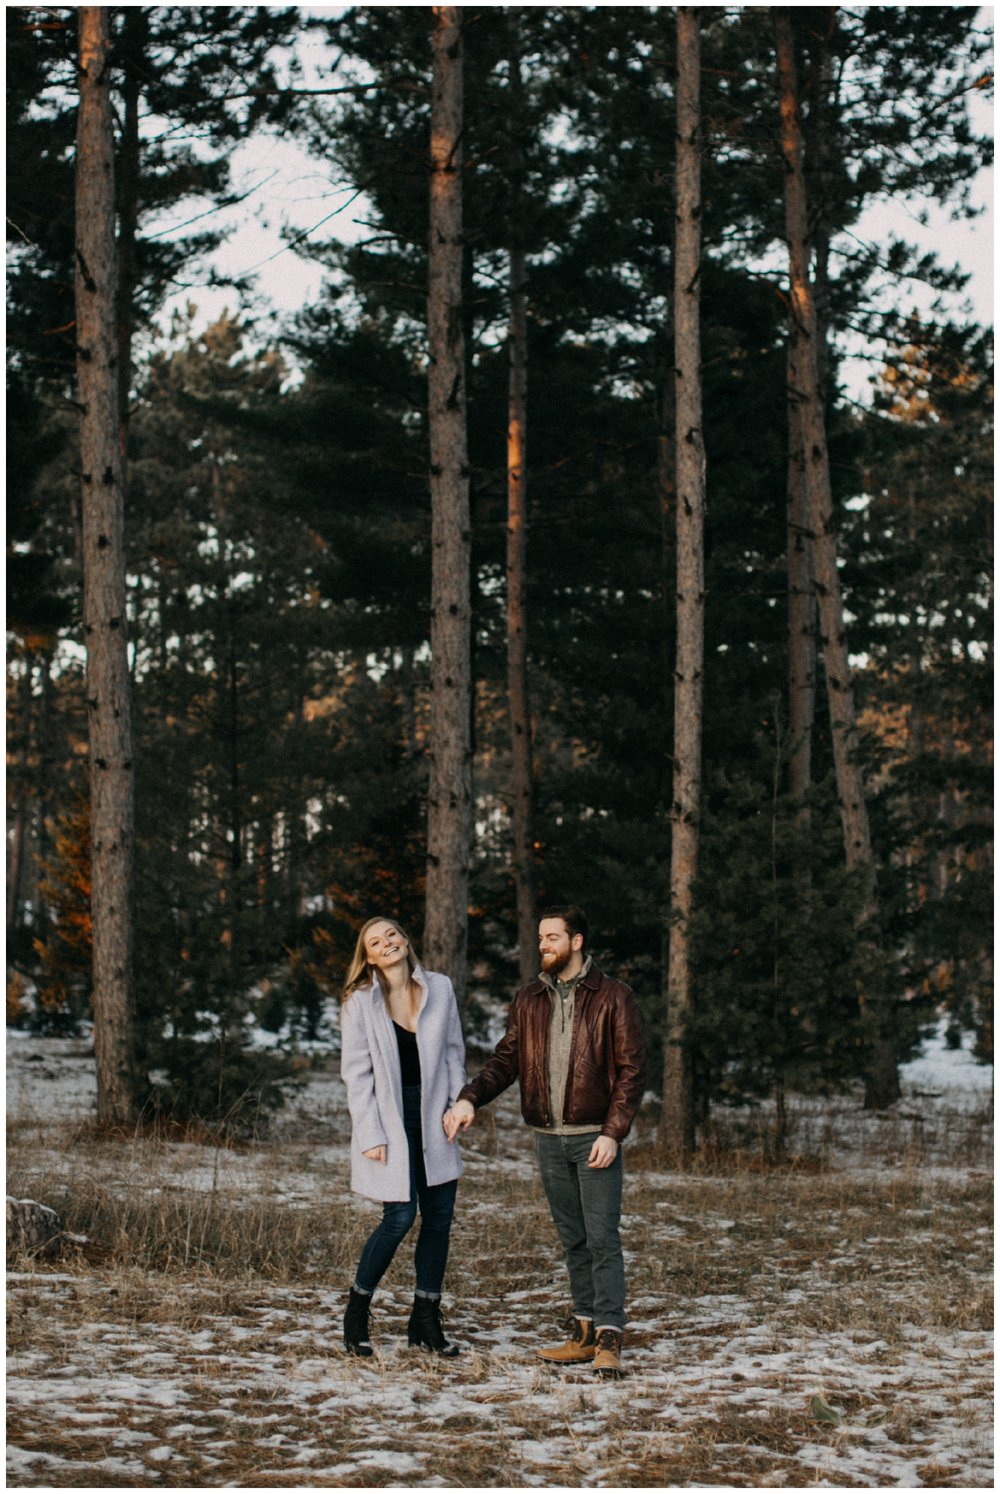 Outdoor, MN winter engagement session photographed by Britt DeZeeuw